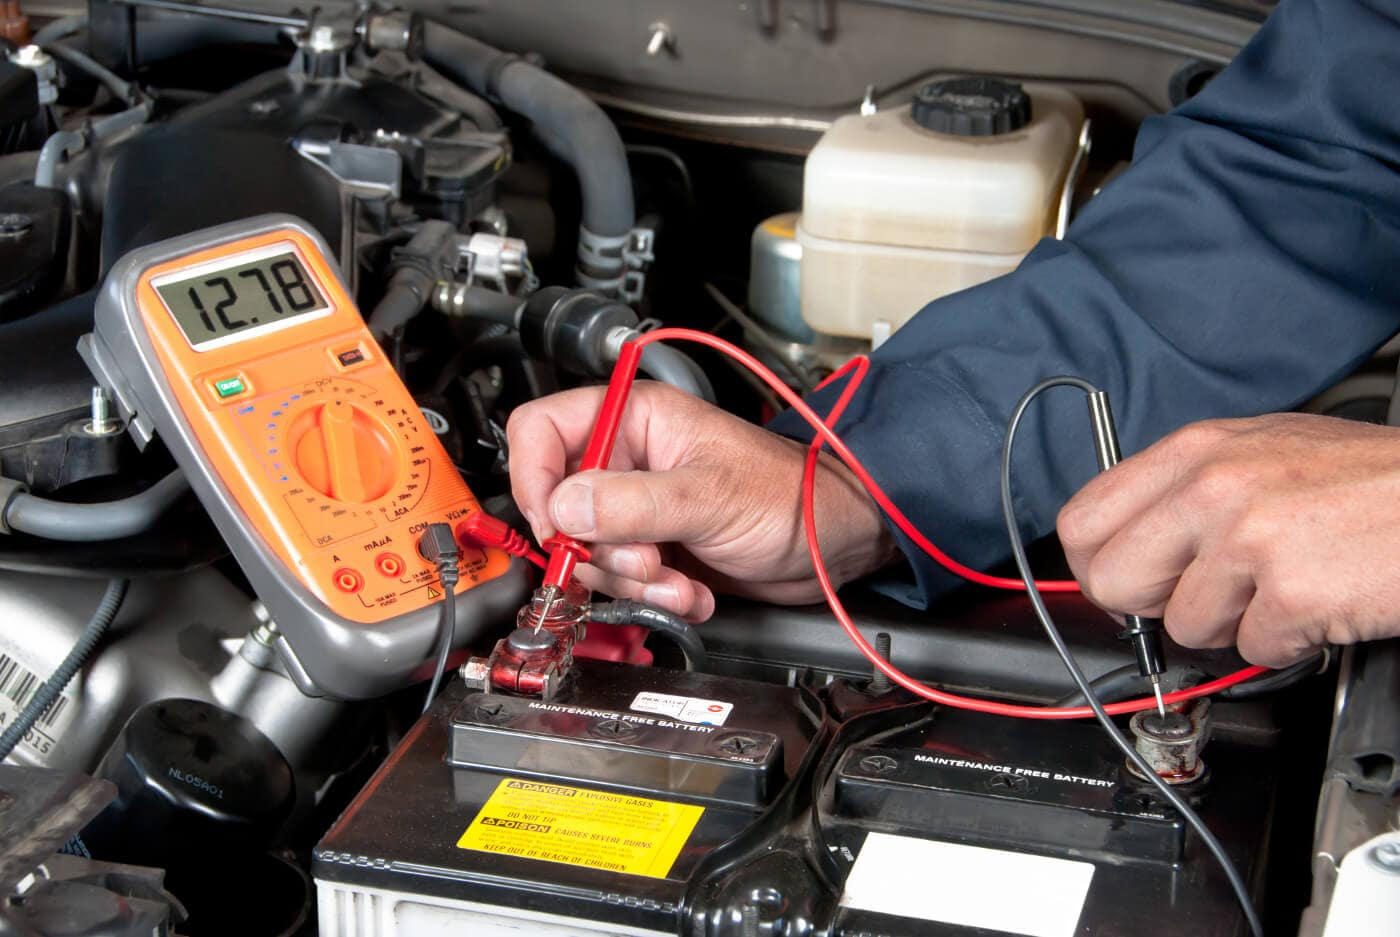 A mechanic testing a car battery